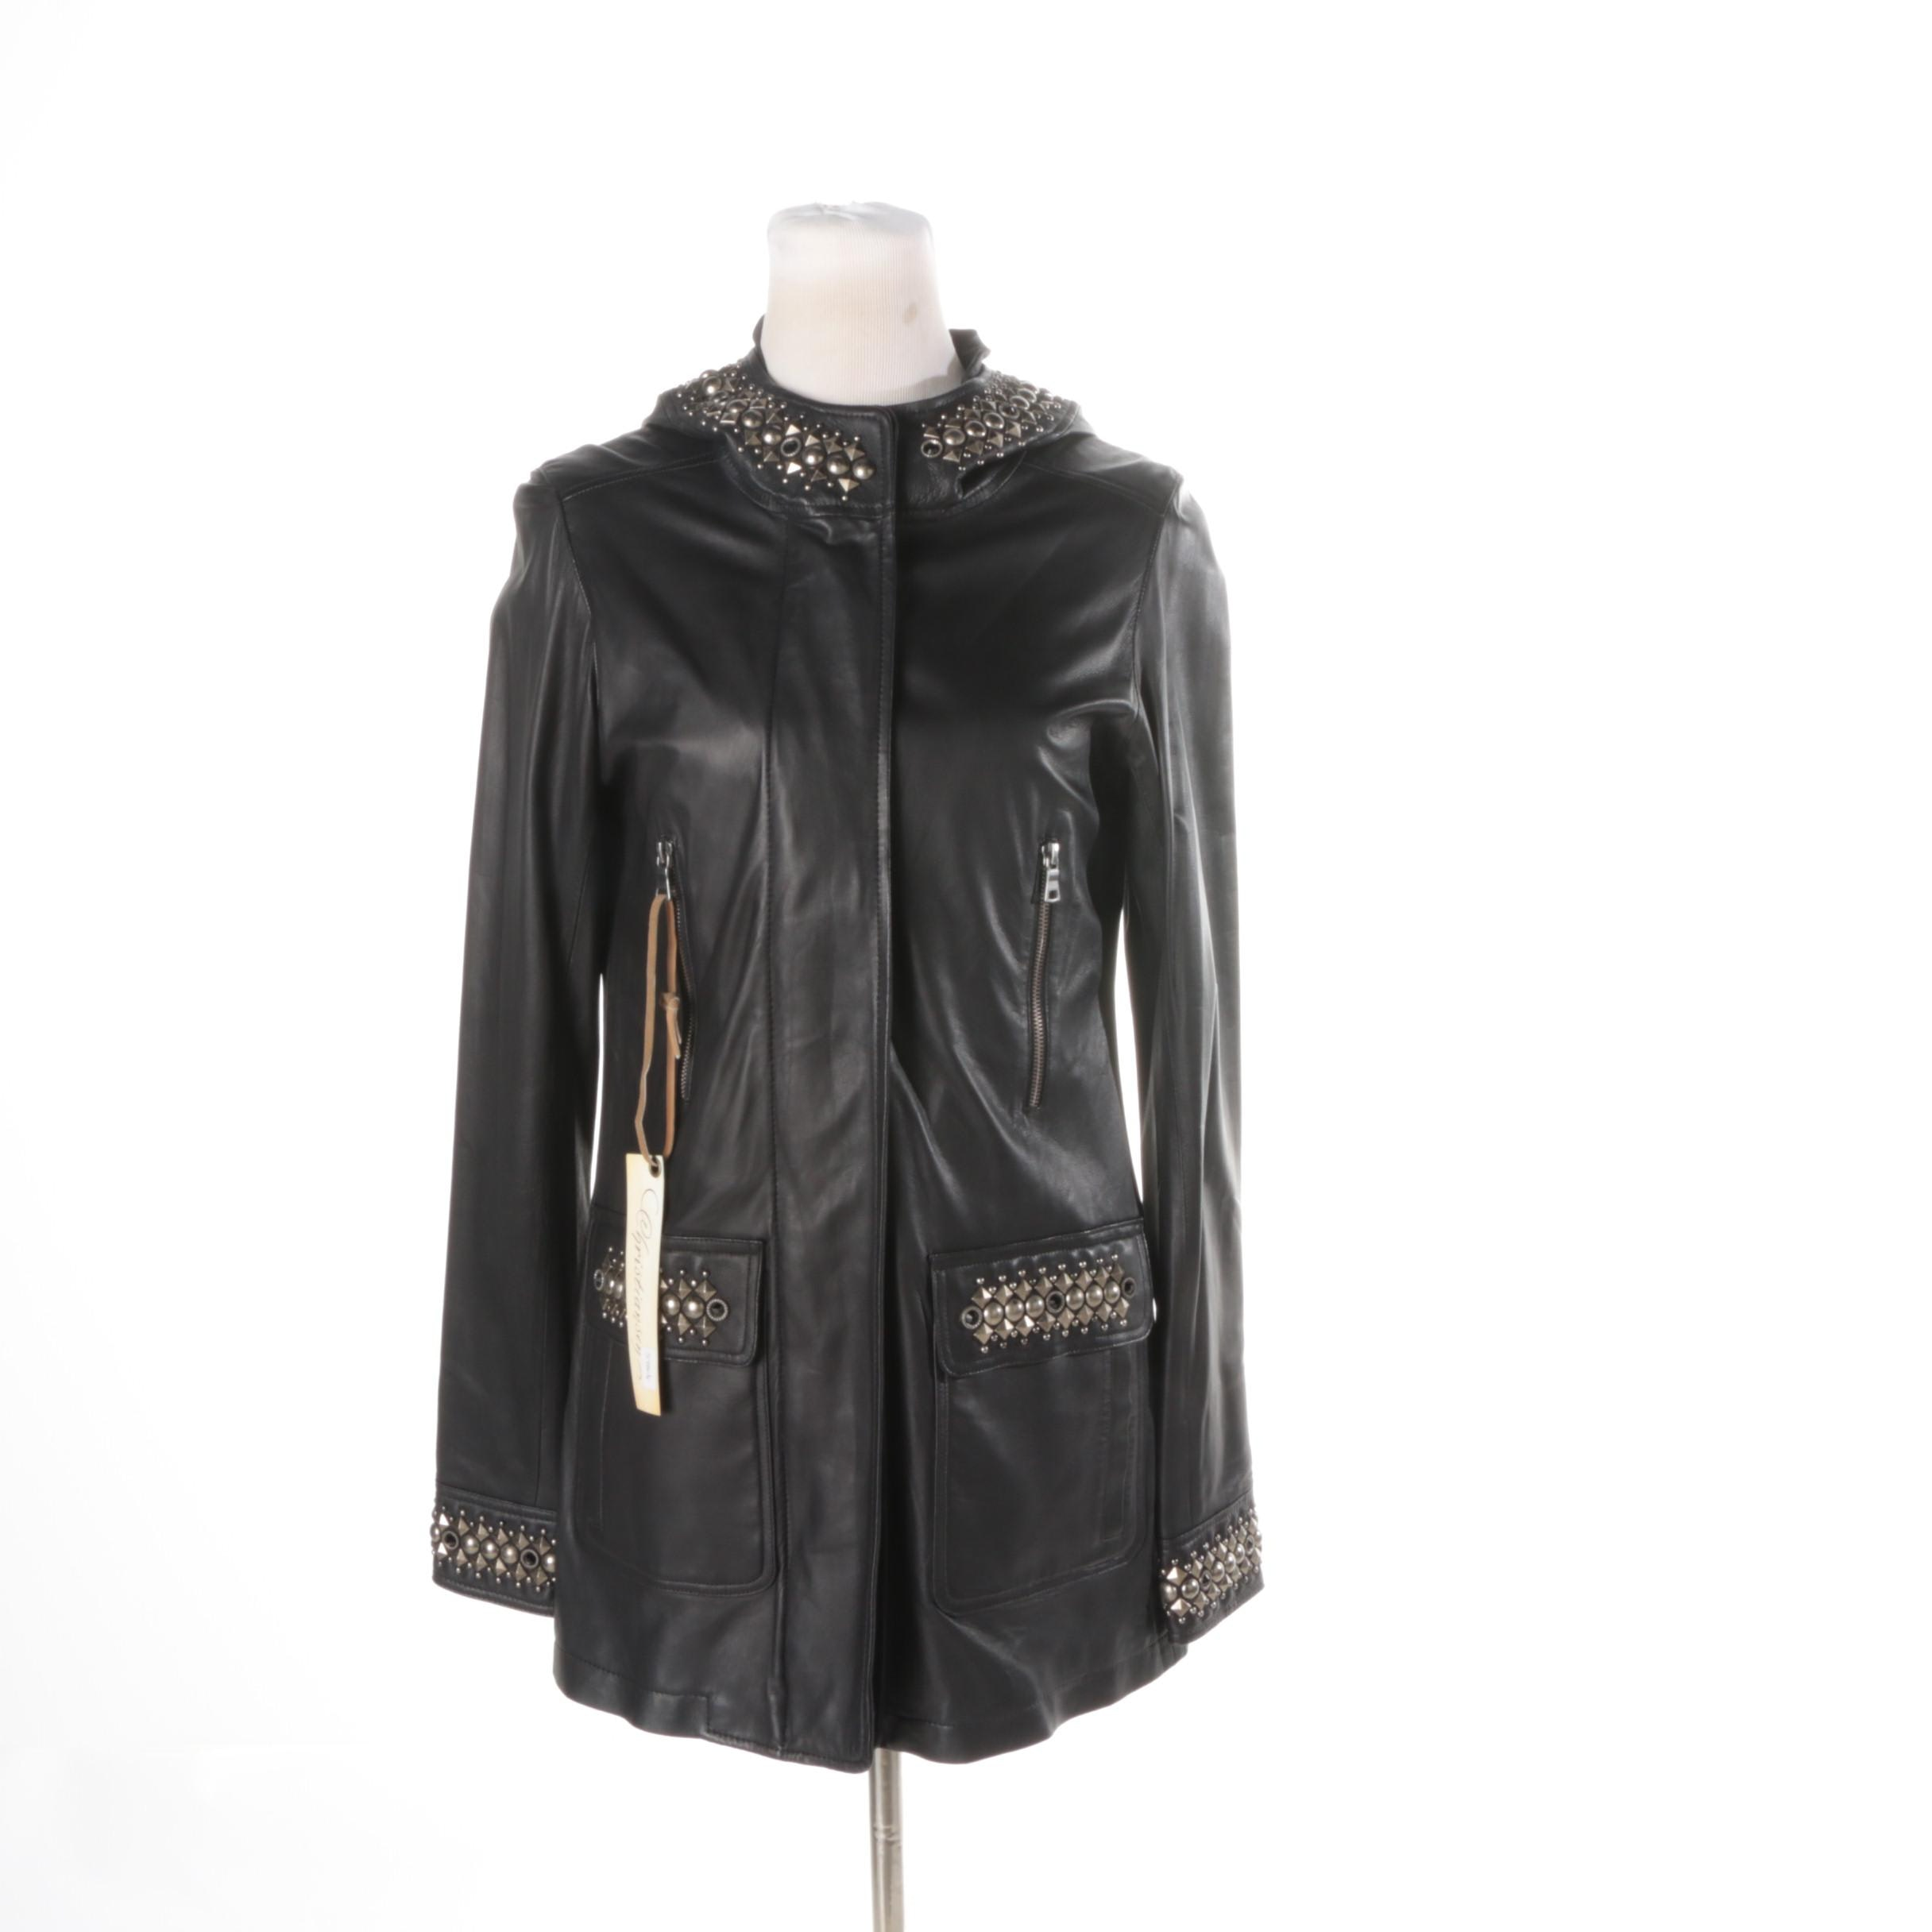 Women's Christiansen Black Studded Leather Jacket